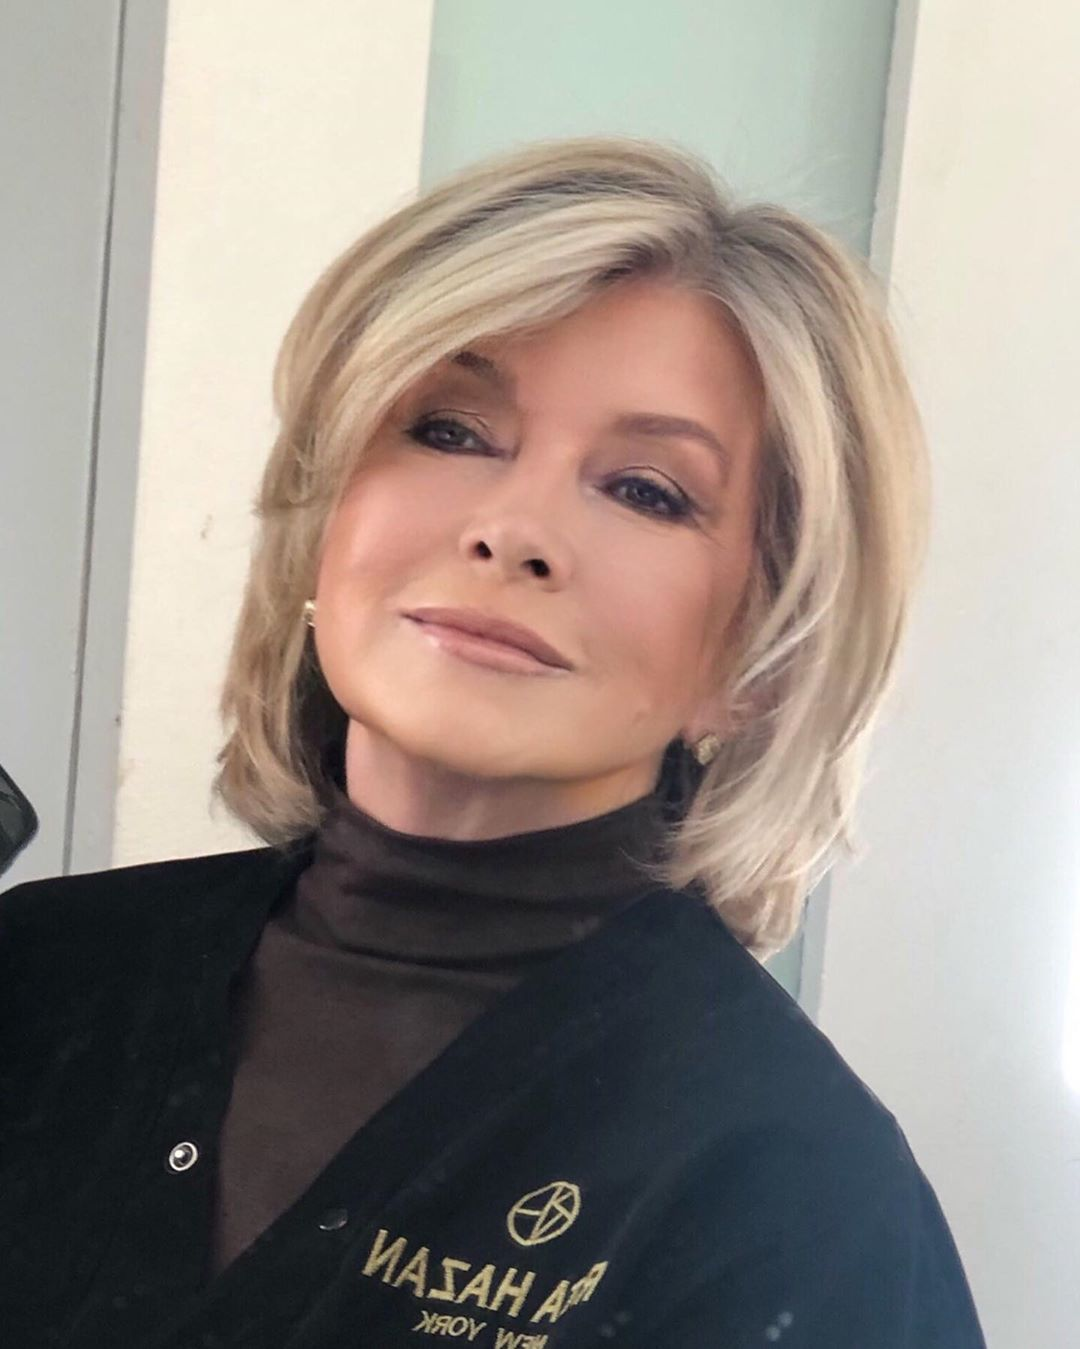 Look Fresh with Short Layered Haircuts for Older Women (Updated 2021) a66962a7b06be92cf9f7716e77f0a344